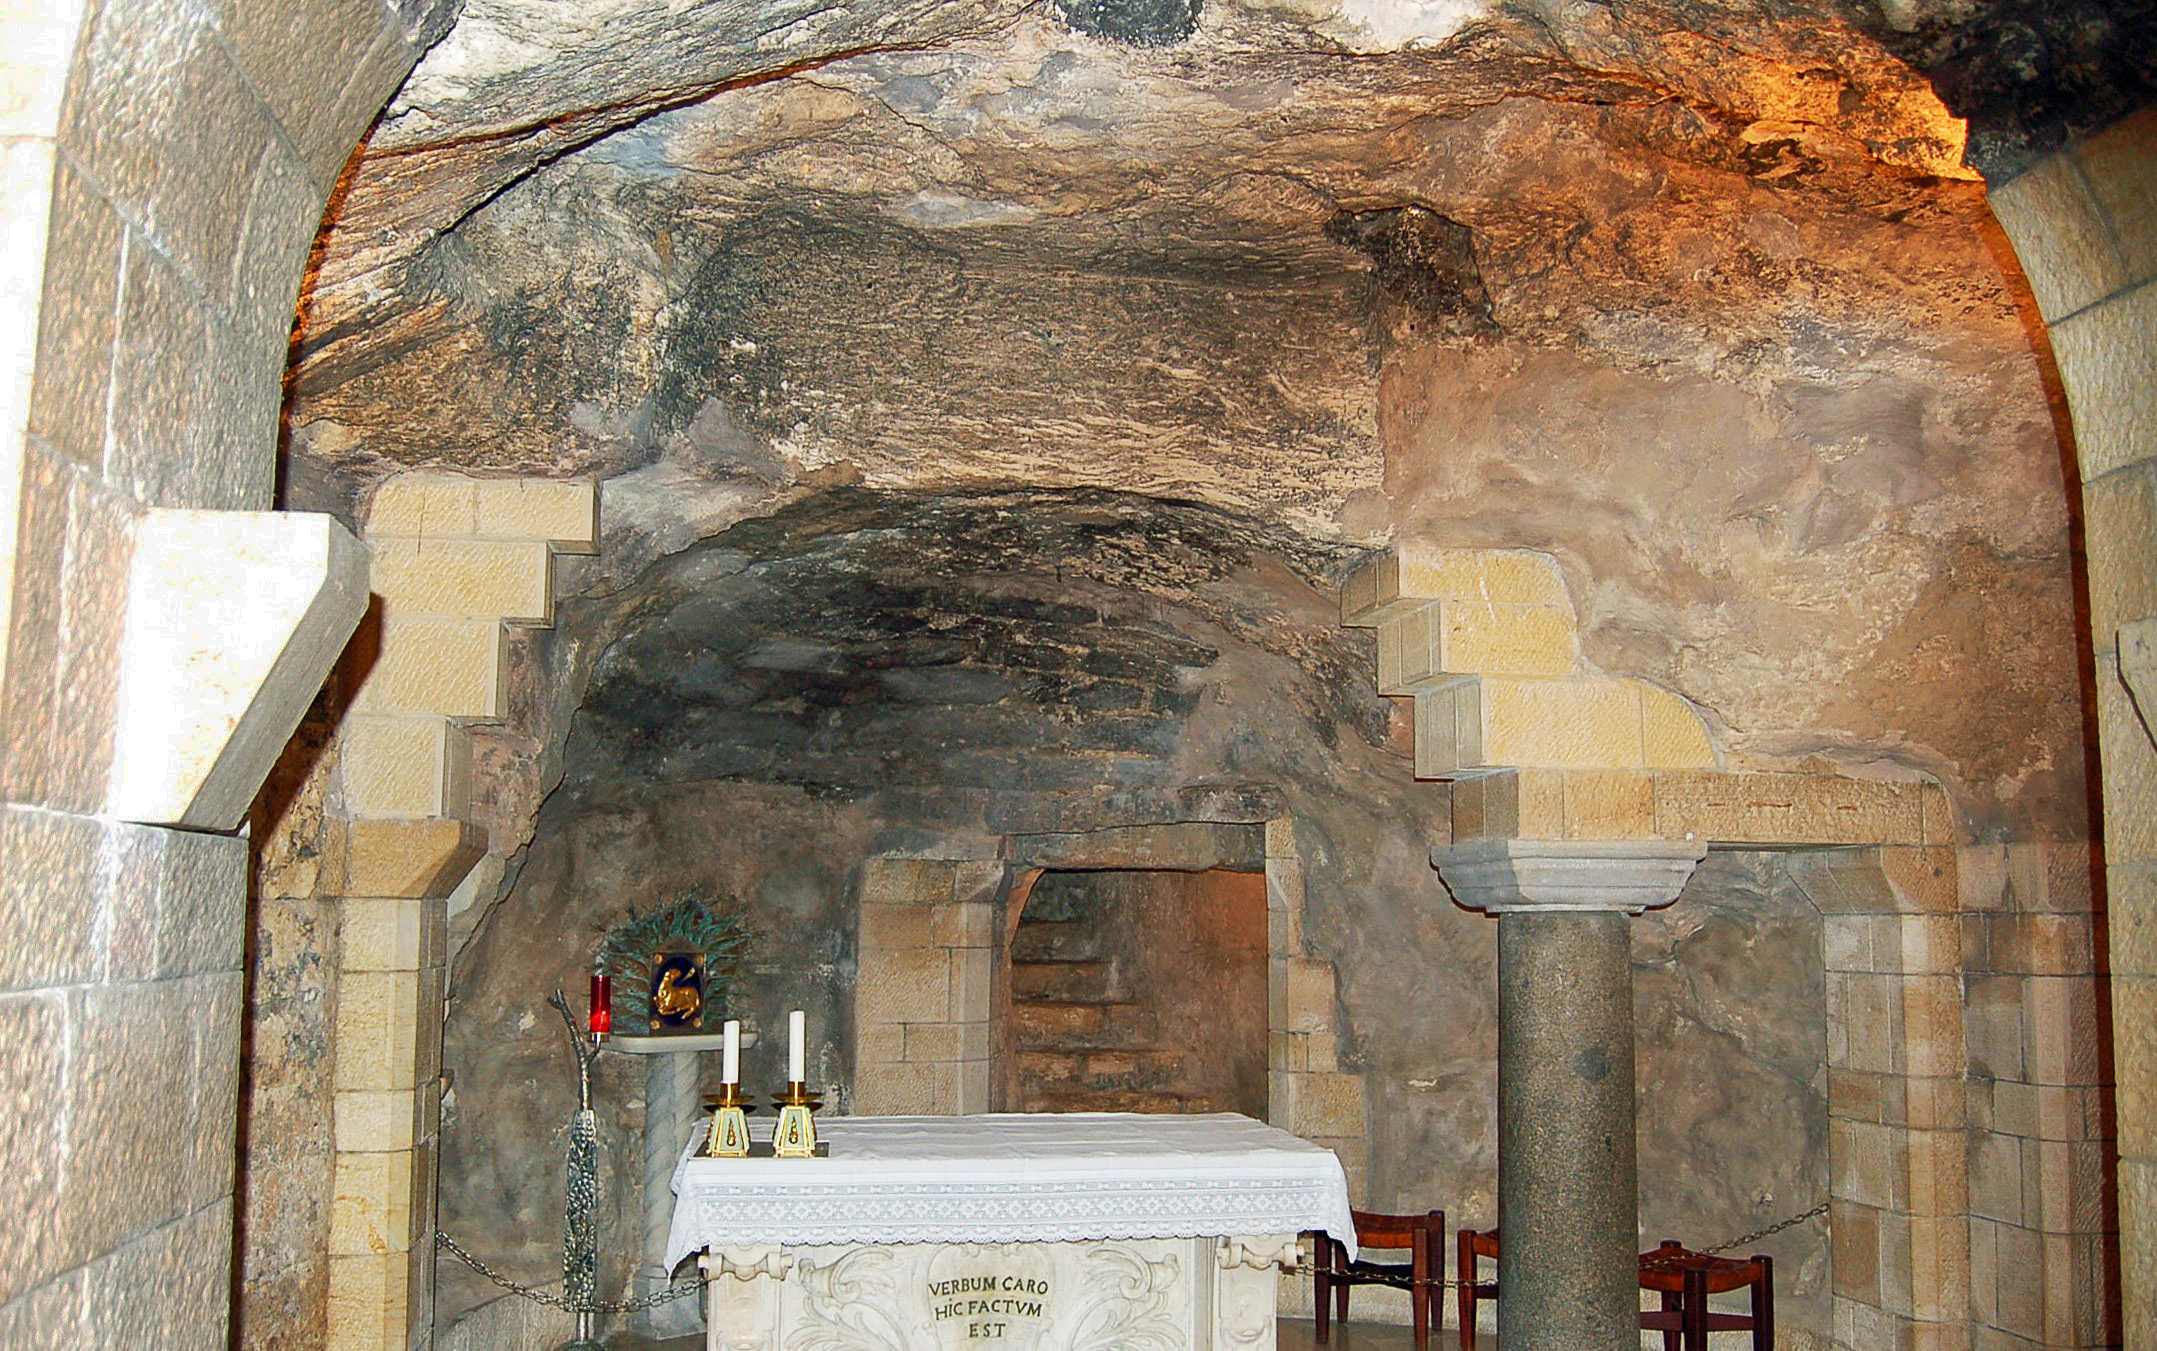 Cave beneath Basilica of the Annunciation (Photo by Don Knebel)